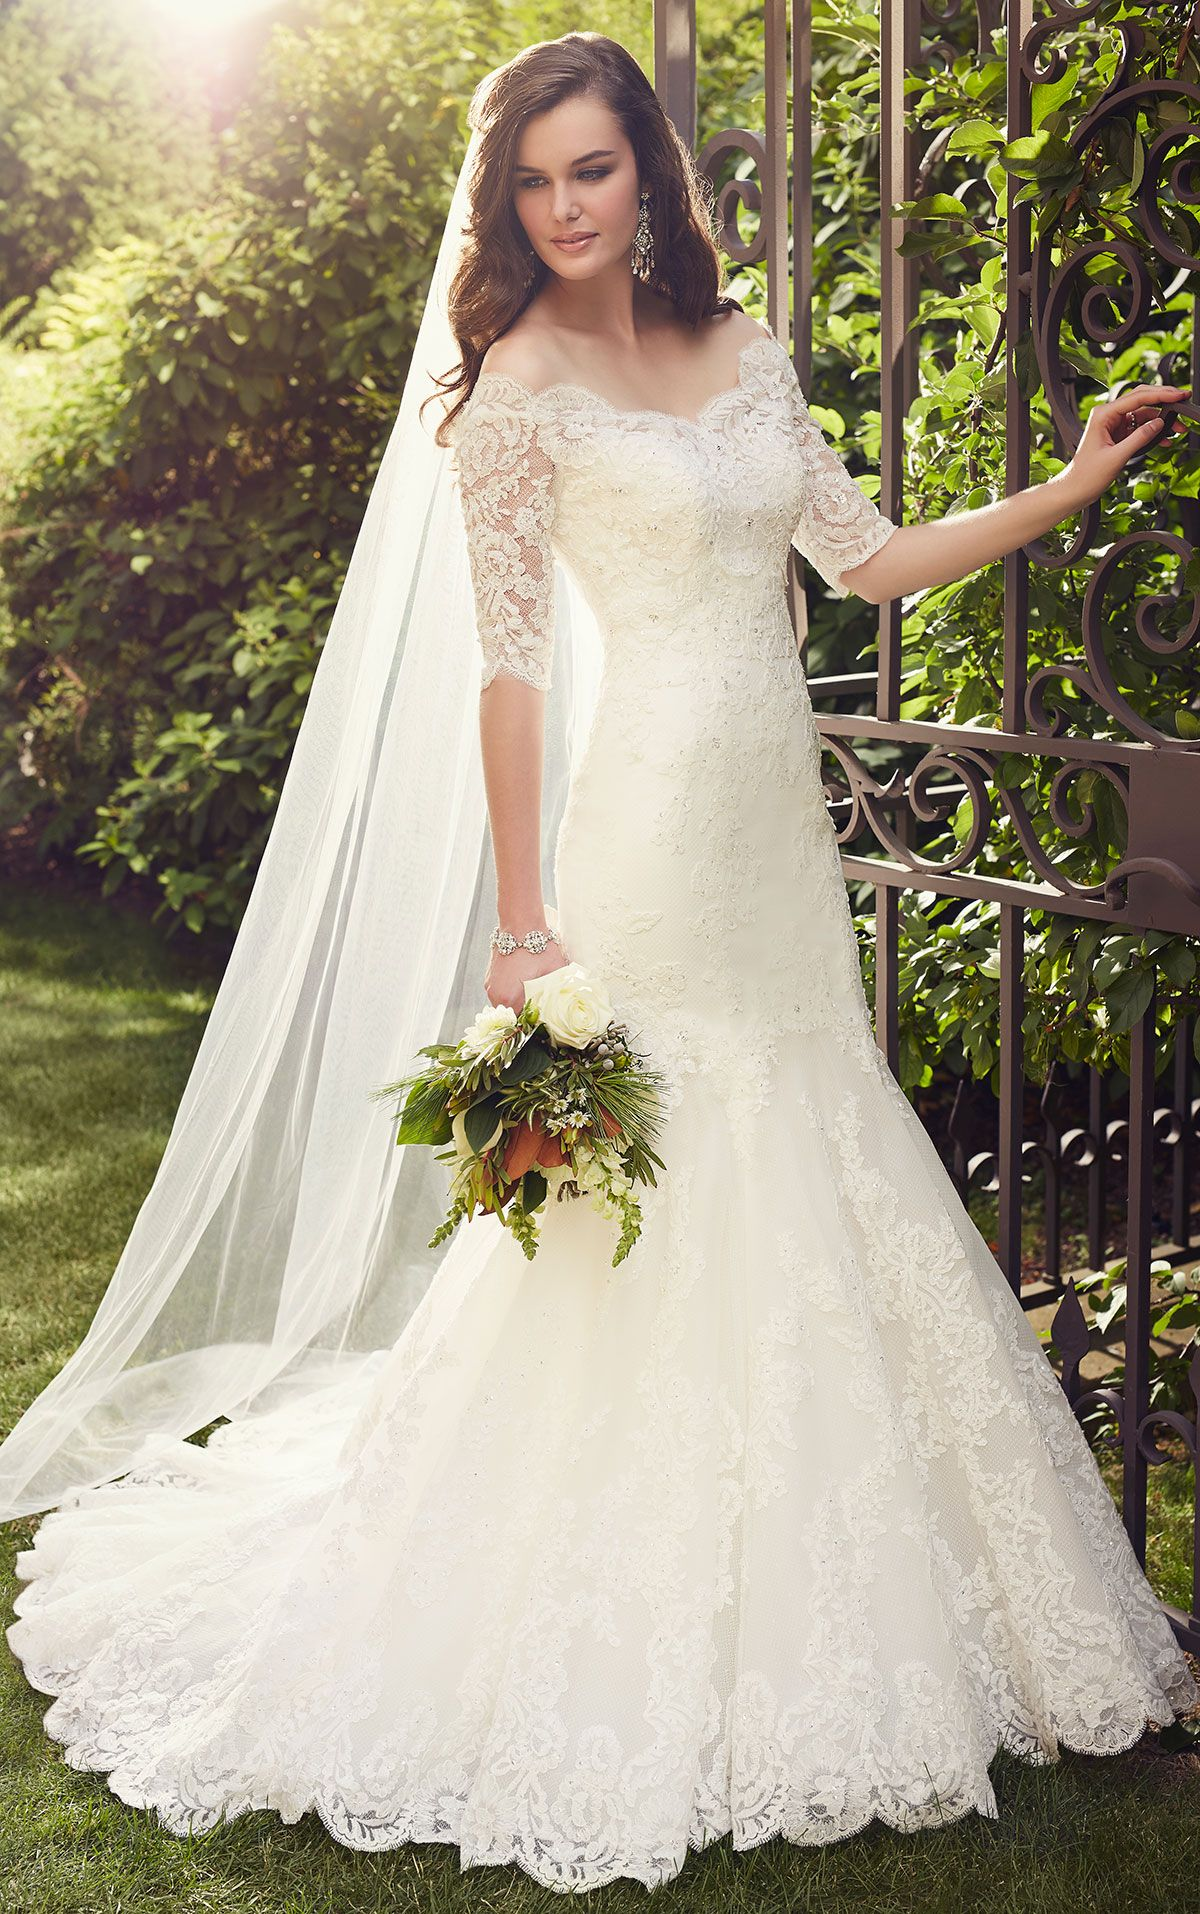 Find Your Perfect Fit And Flare Wedding Dress With Lace Sleeves On An Illusion